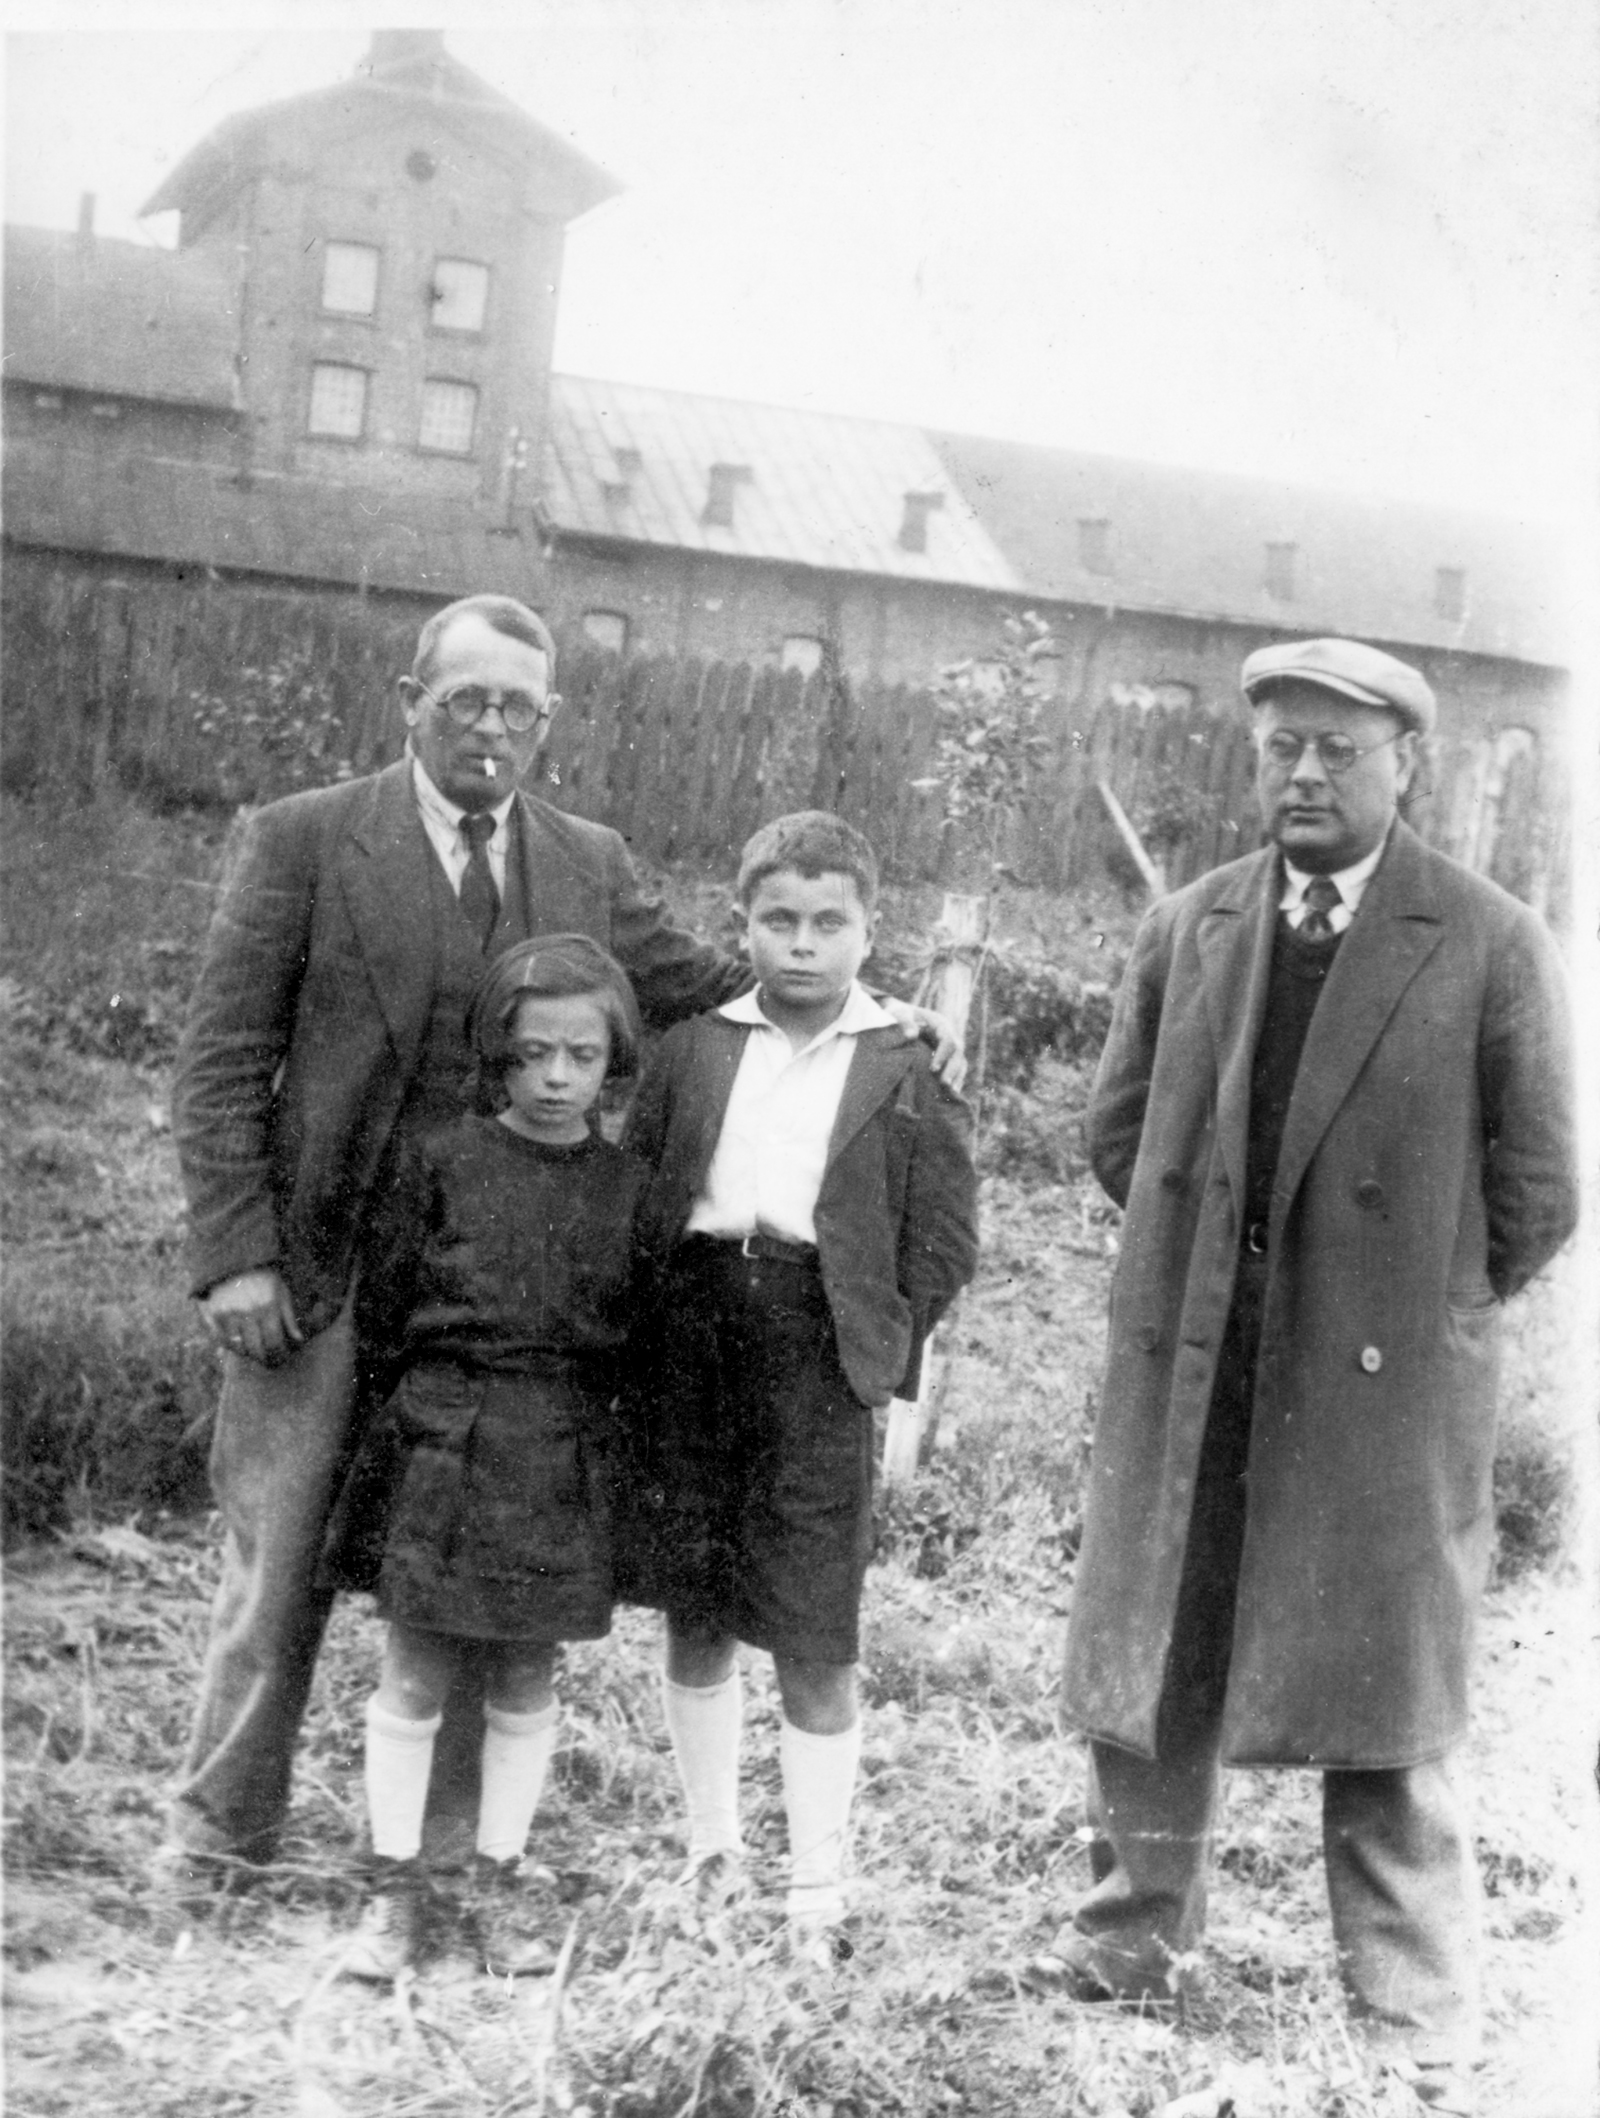 Hannan Teitel with his uncle Icok, sister Regina, and father Zindel